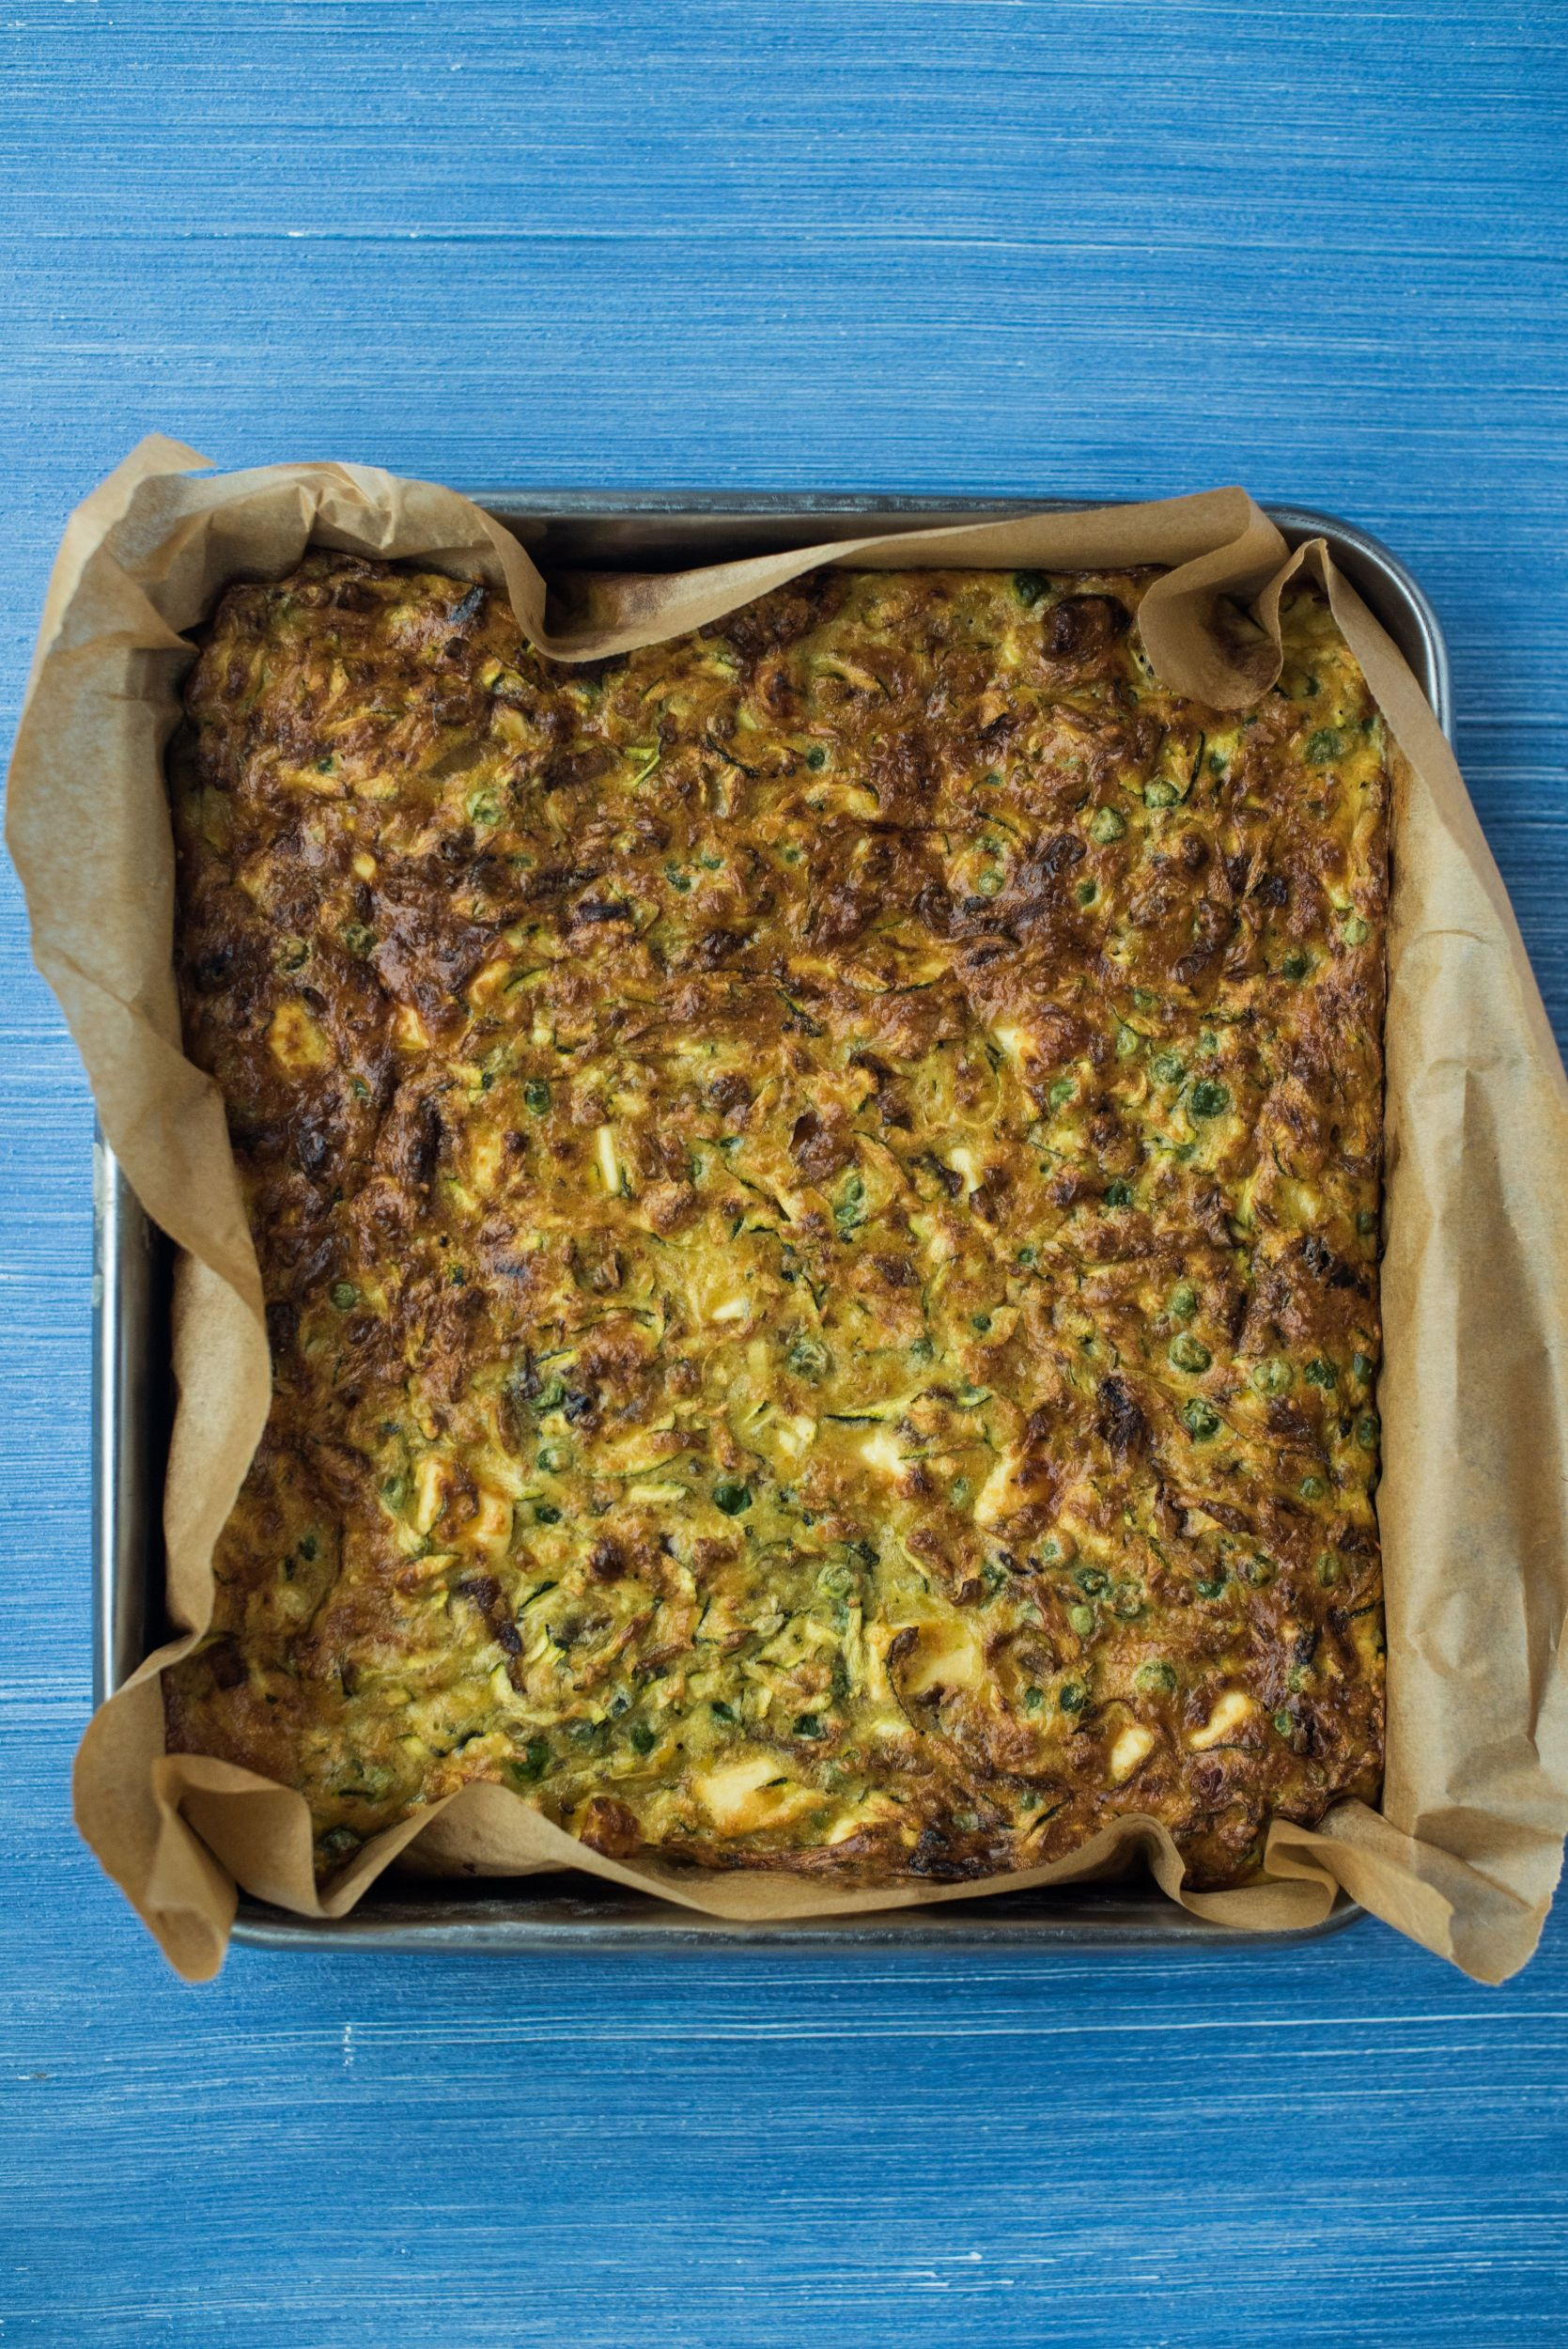 PASHTIDA – COURGETTE AND RICOTTA BAKE